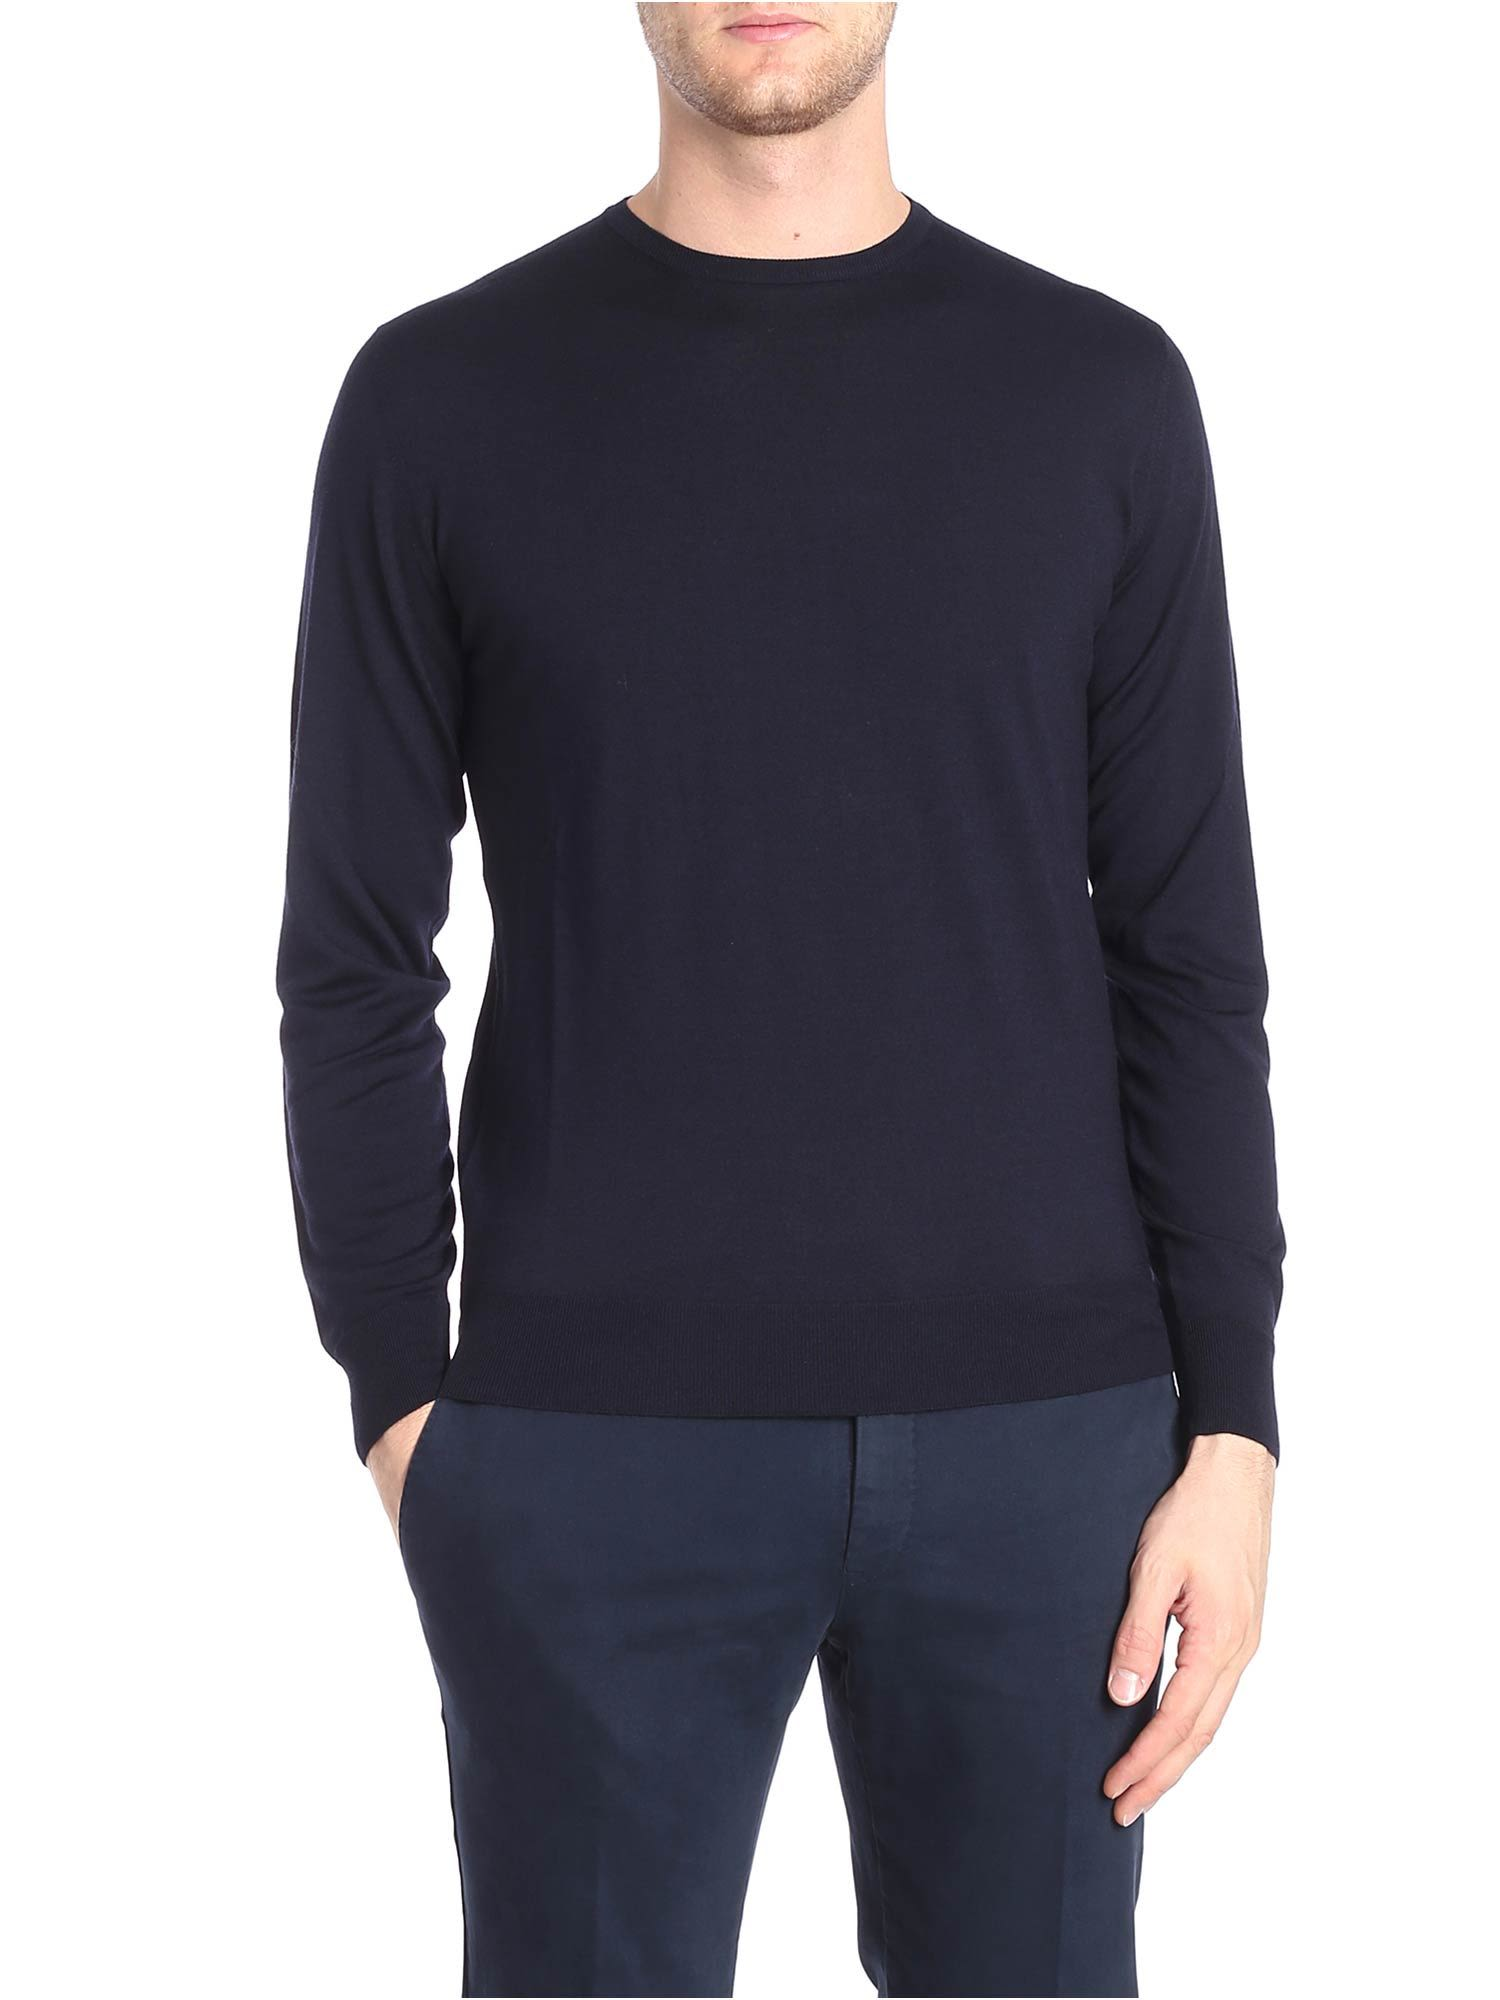 LUIGI BORRELLI Classic Sweater in Blue